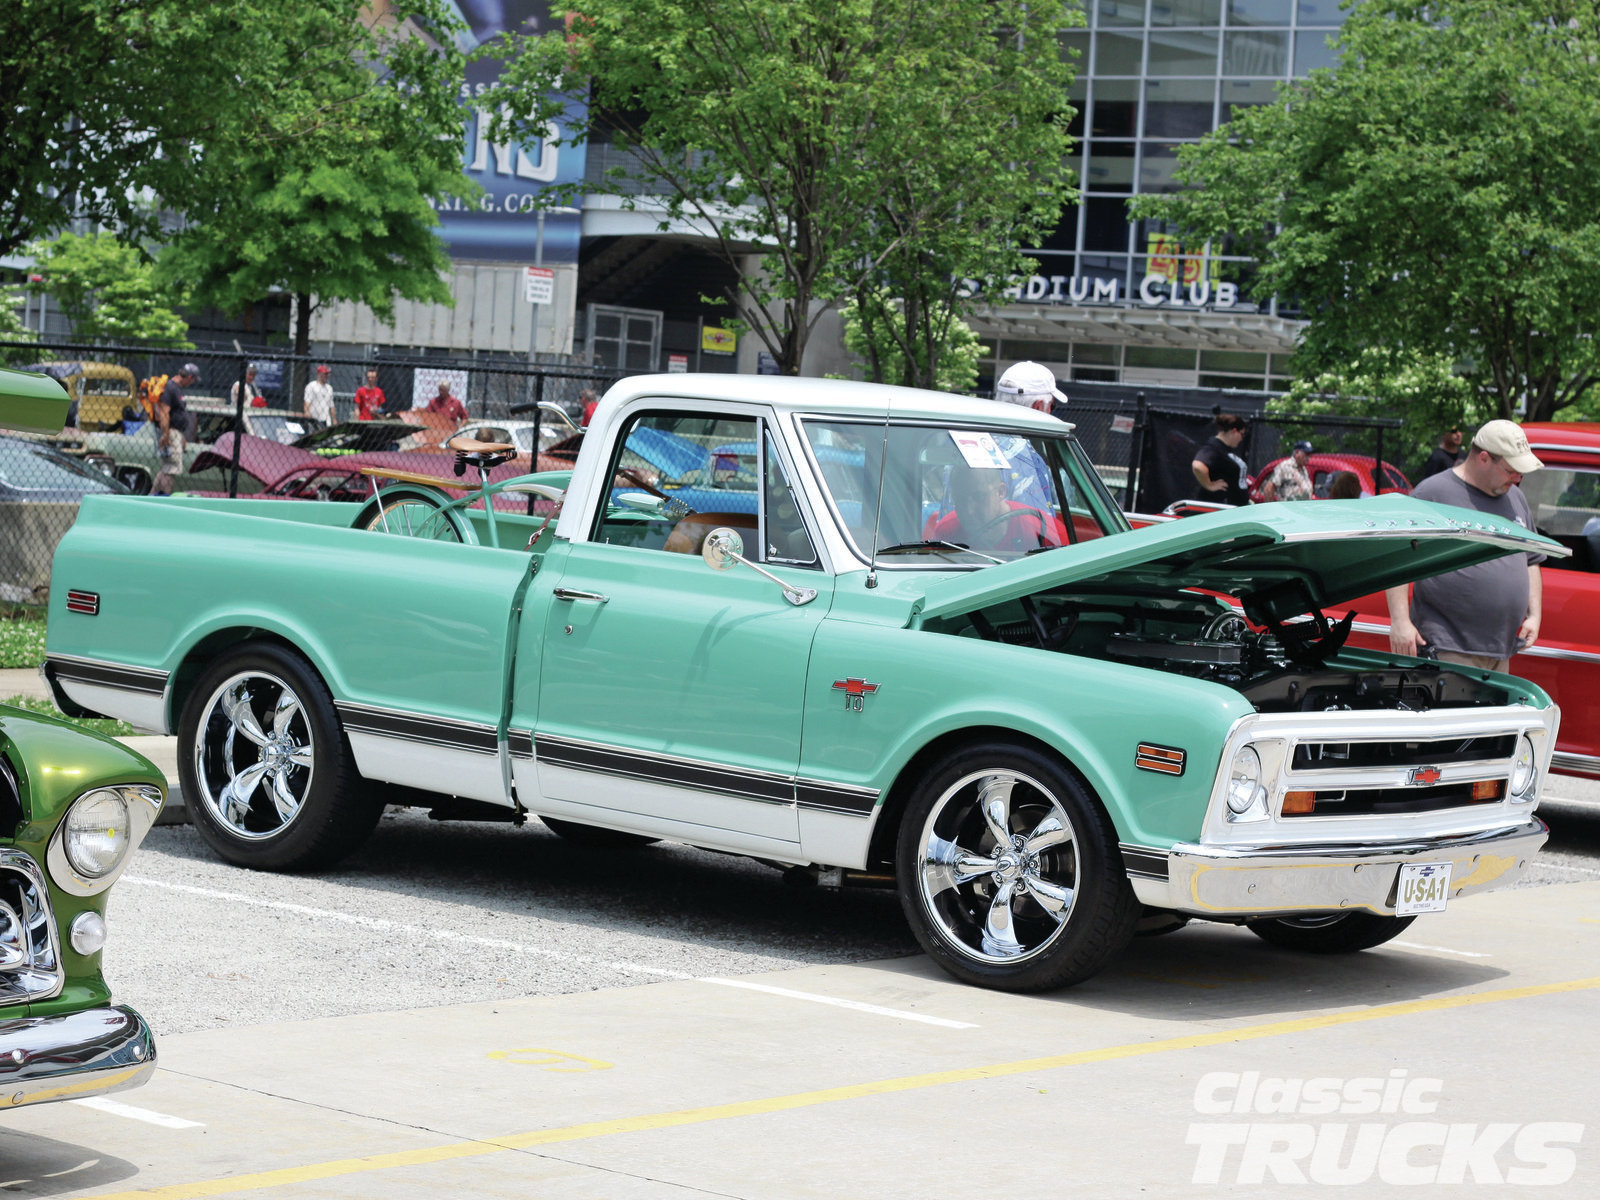 Greg Rogers is seen here with his 383-powered 1968 Chevy C10 and drove to the event from Woodsburg, Tennessee. He lowered his truck using C10 drop spindles and springs, and this was his first build from the frame off. Nice job Greg!